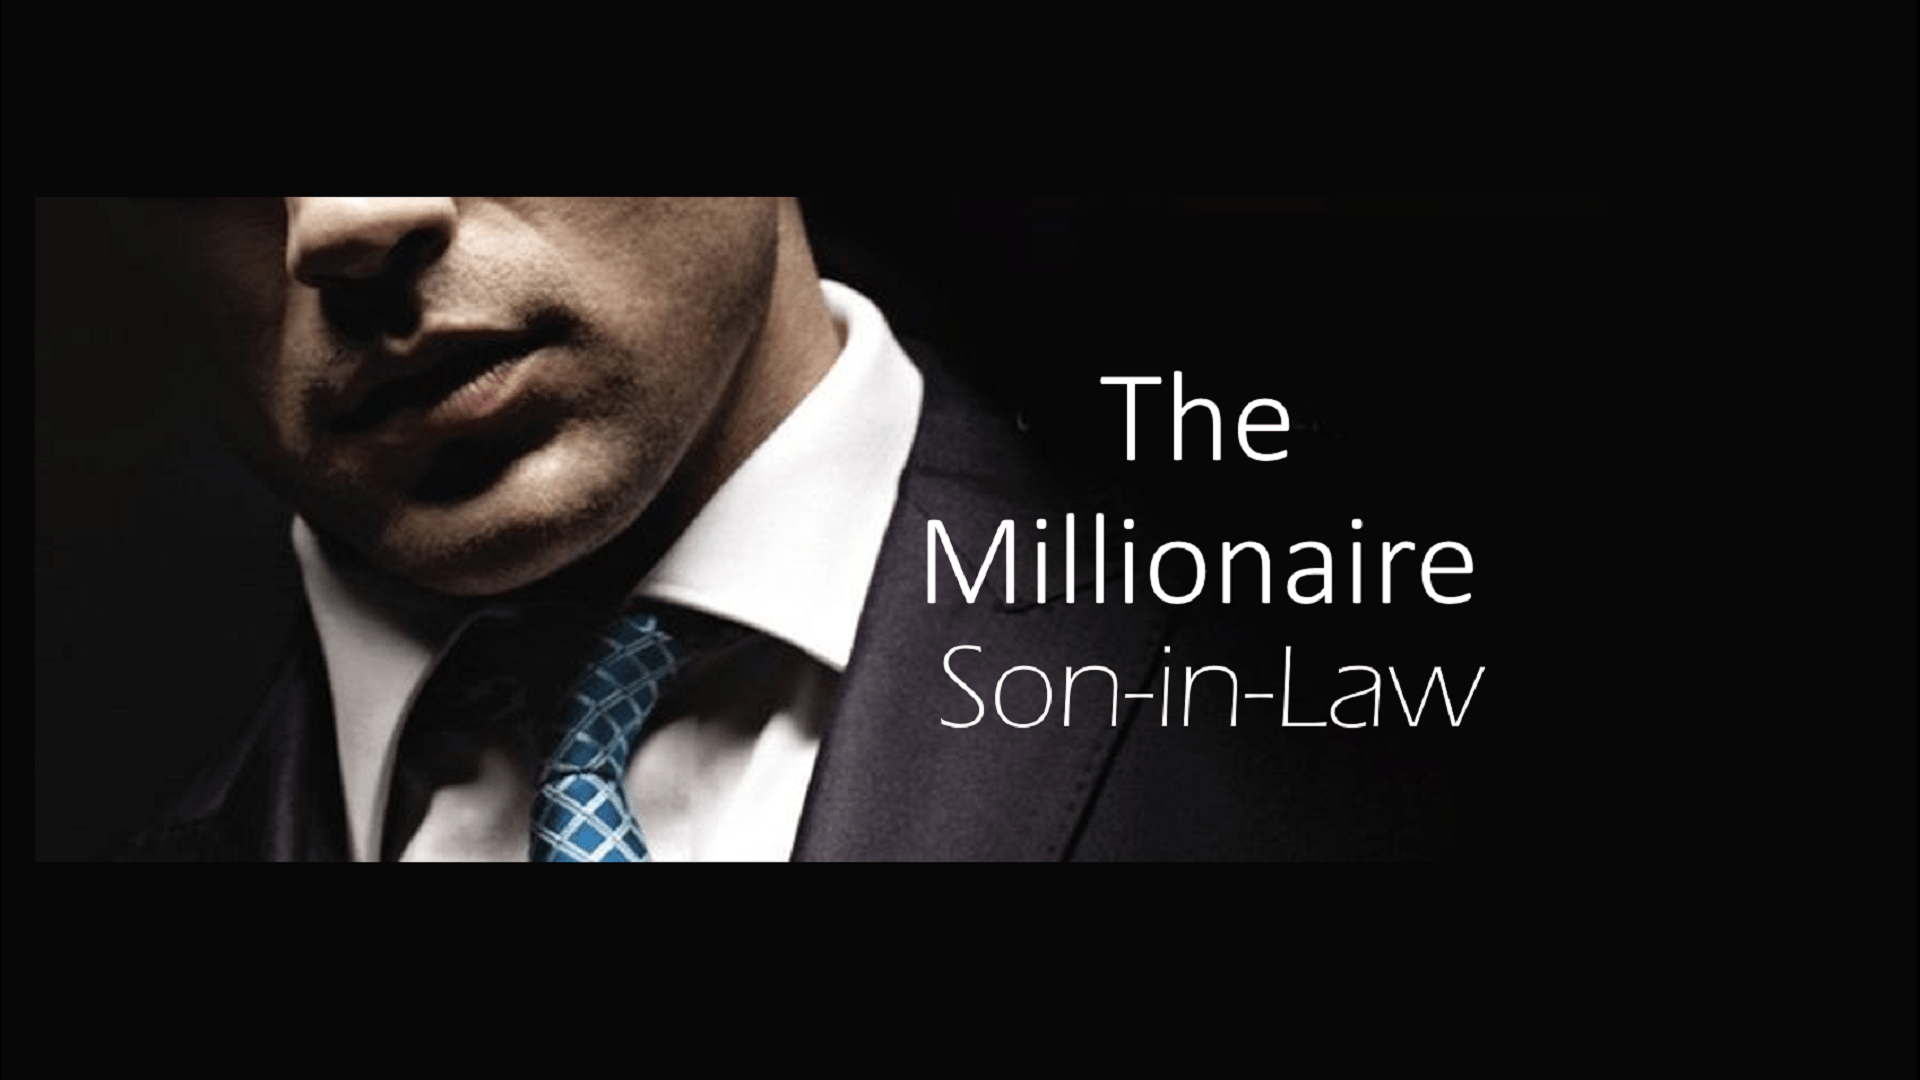 Millionaire Son in Law Novel Cover Image